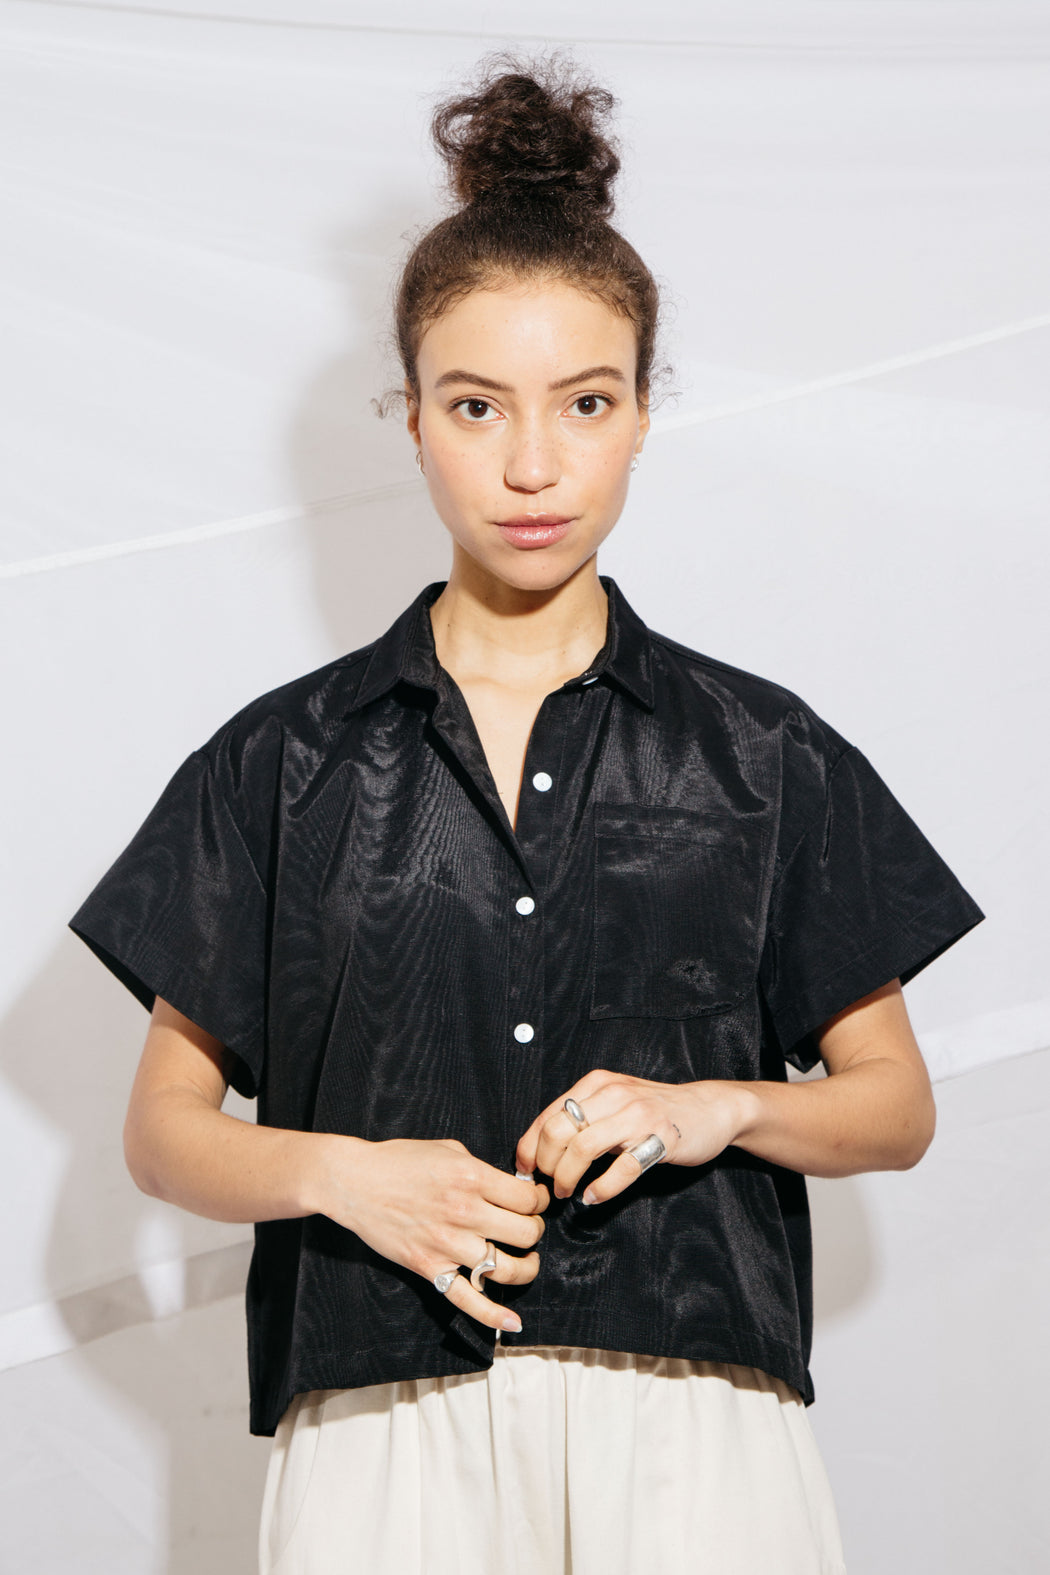 CORSO BUTTONDOWN - BLACK MOIRE